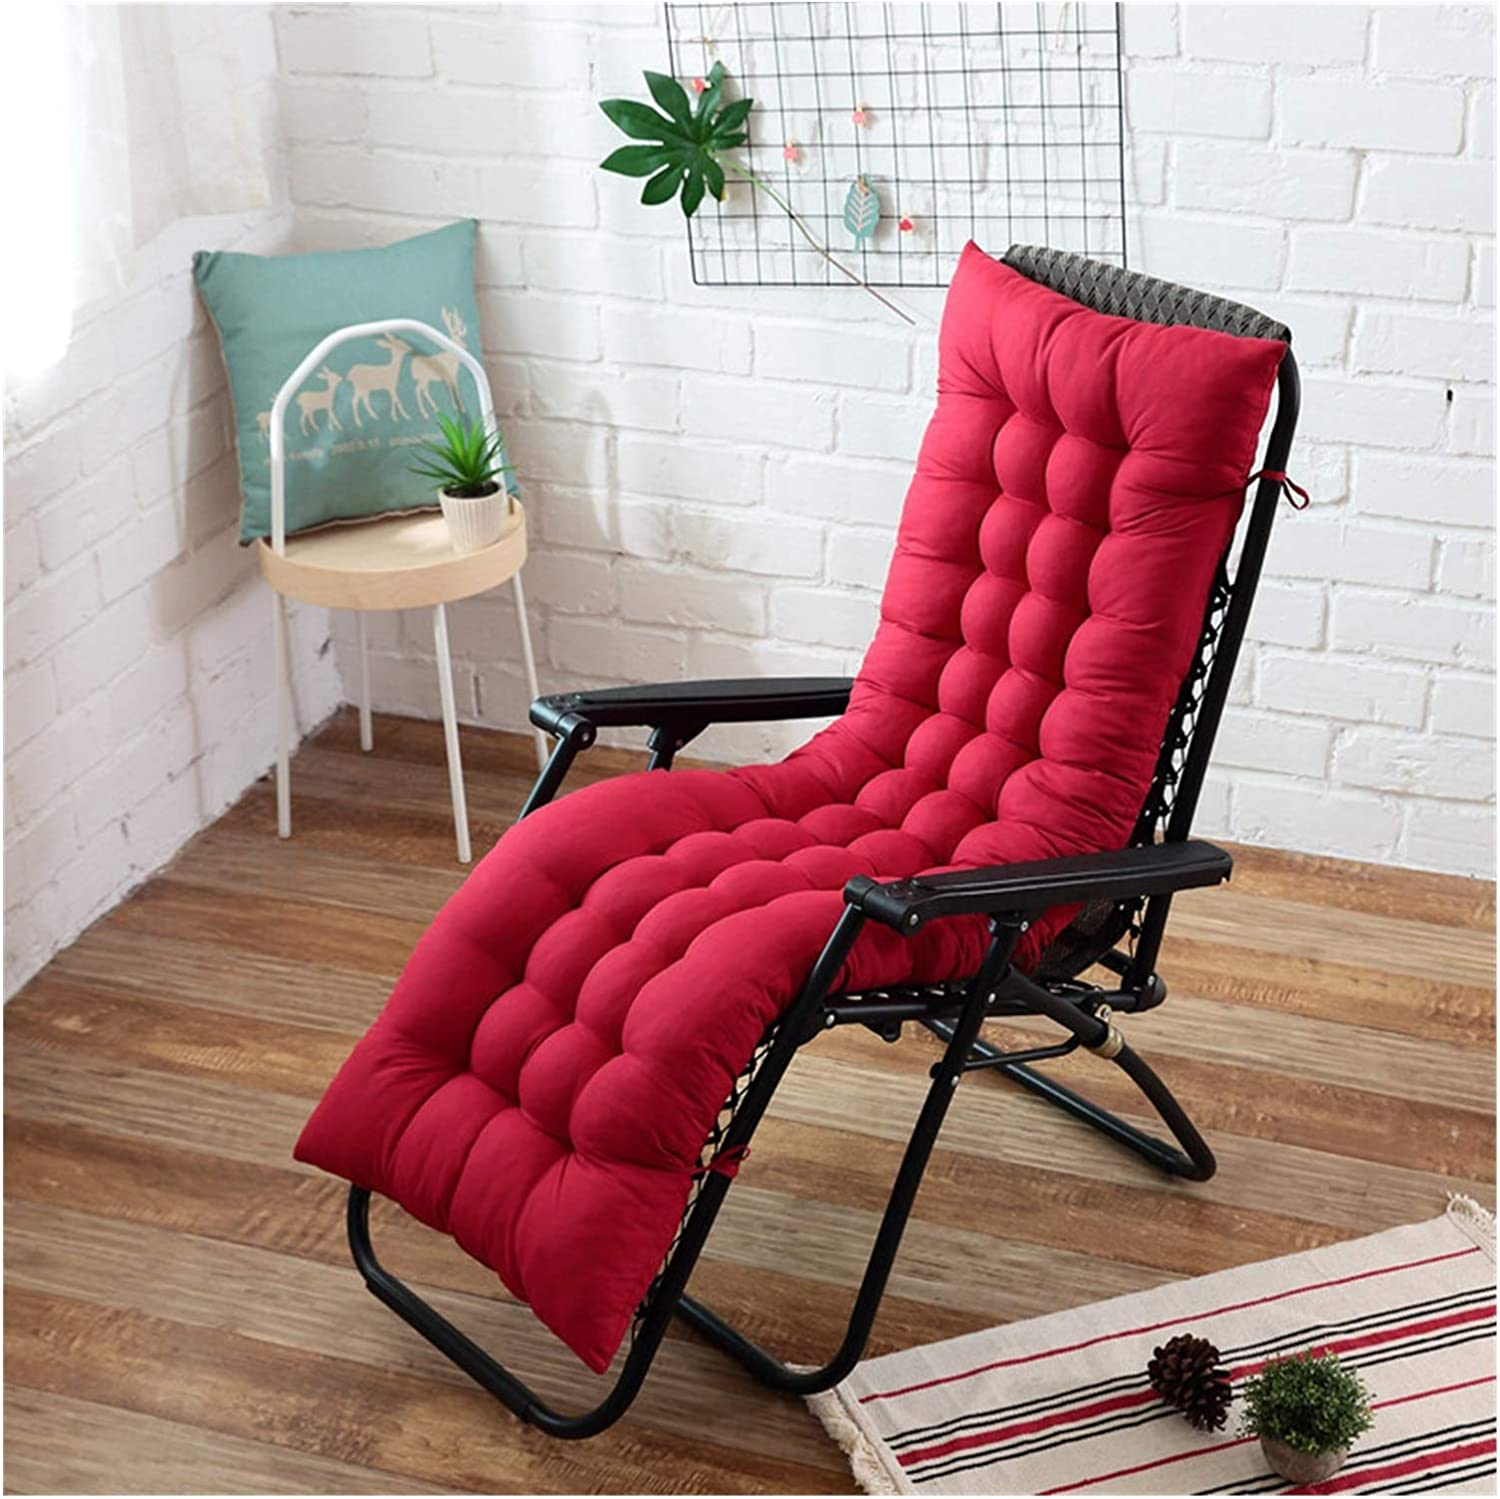 ZCPCS Solid Color 2021 new Cushion Soft 40% OFF Cheap Sale Office Cus Seat Comfortable Chair